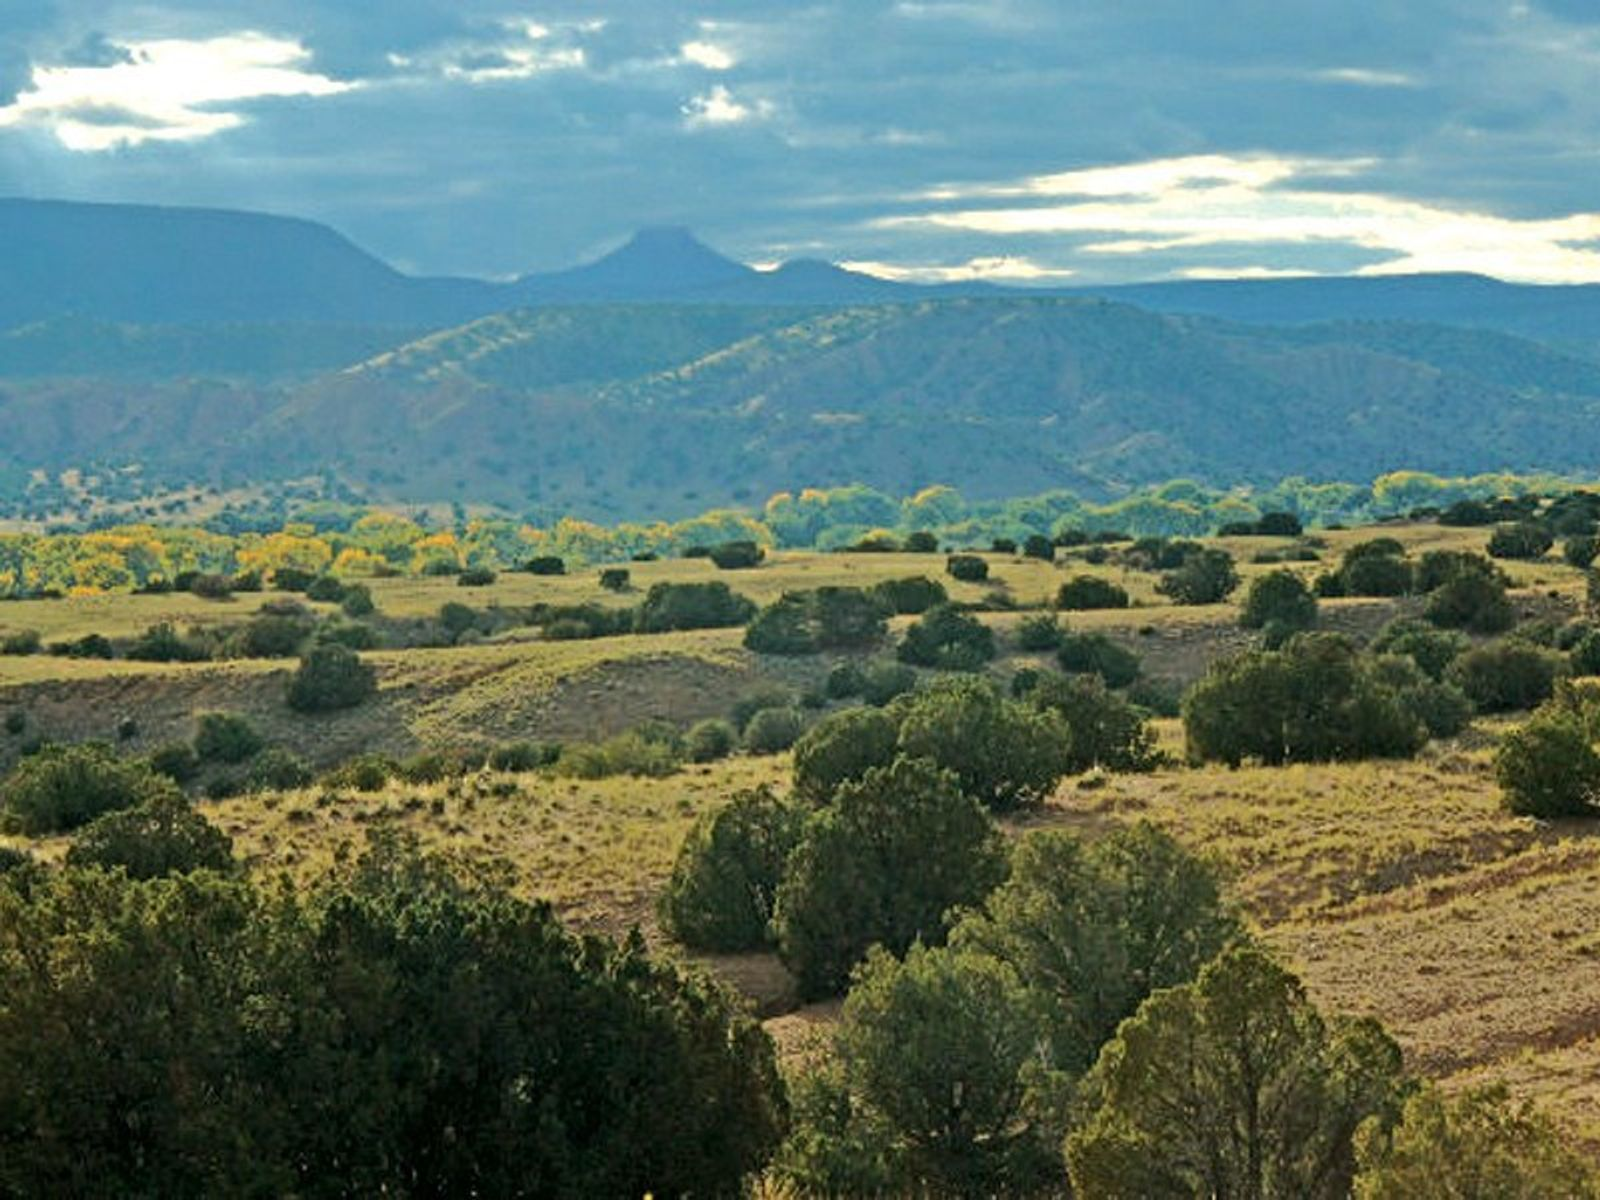 Lot 43 Vista De Pedernal, Medanales NM Acreage / Lots - Santa Fe Real Estate